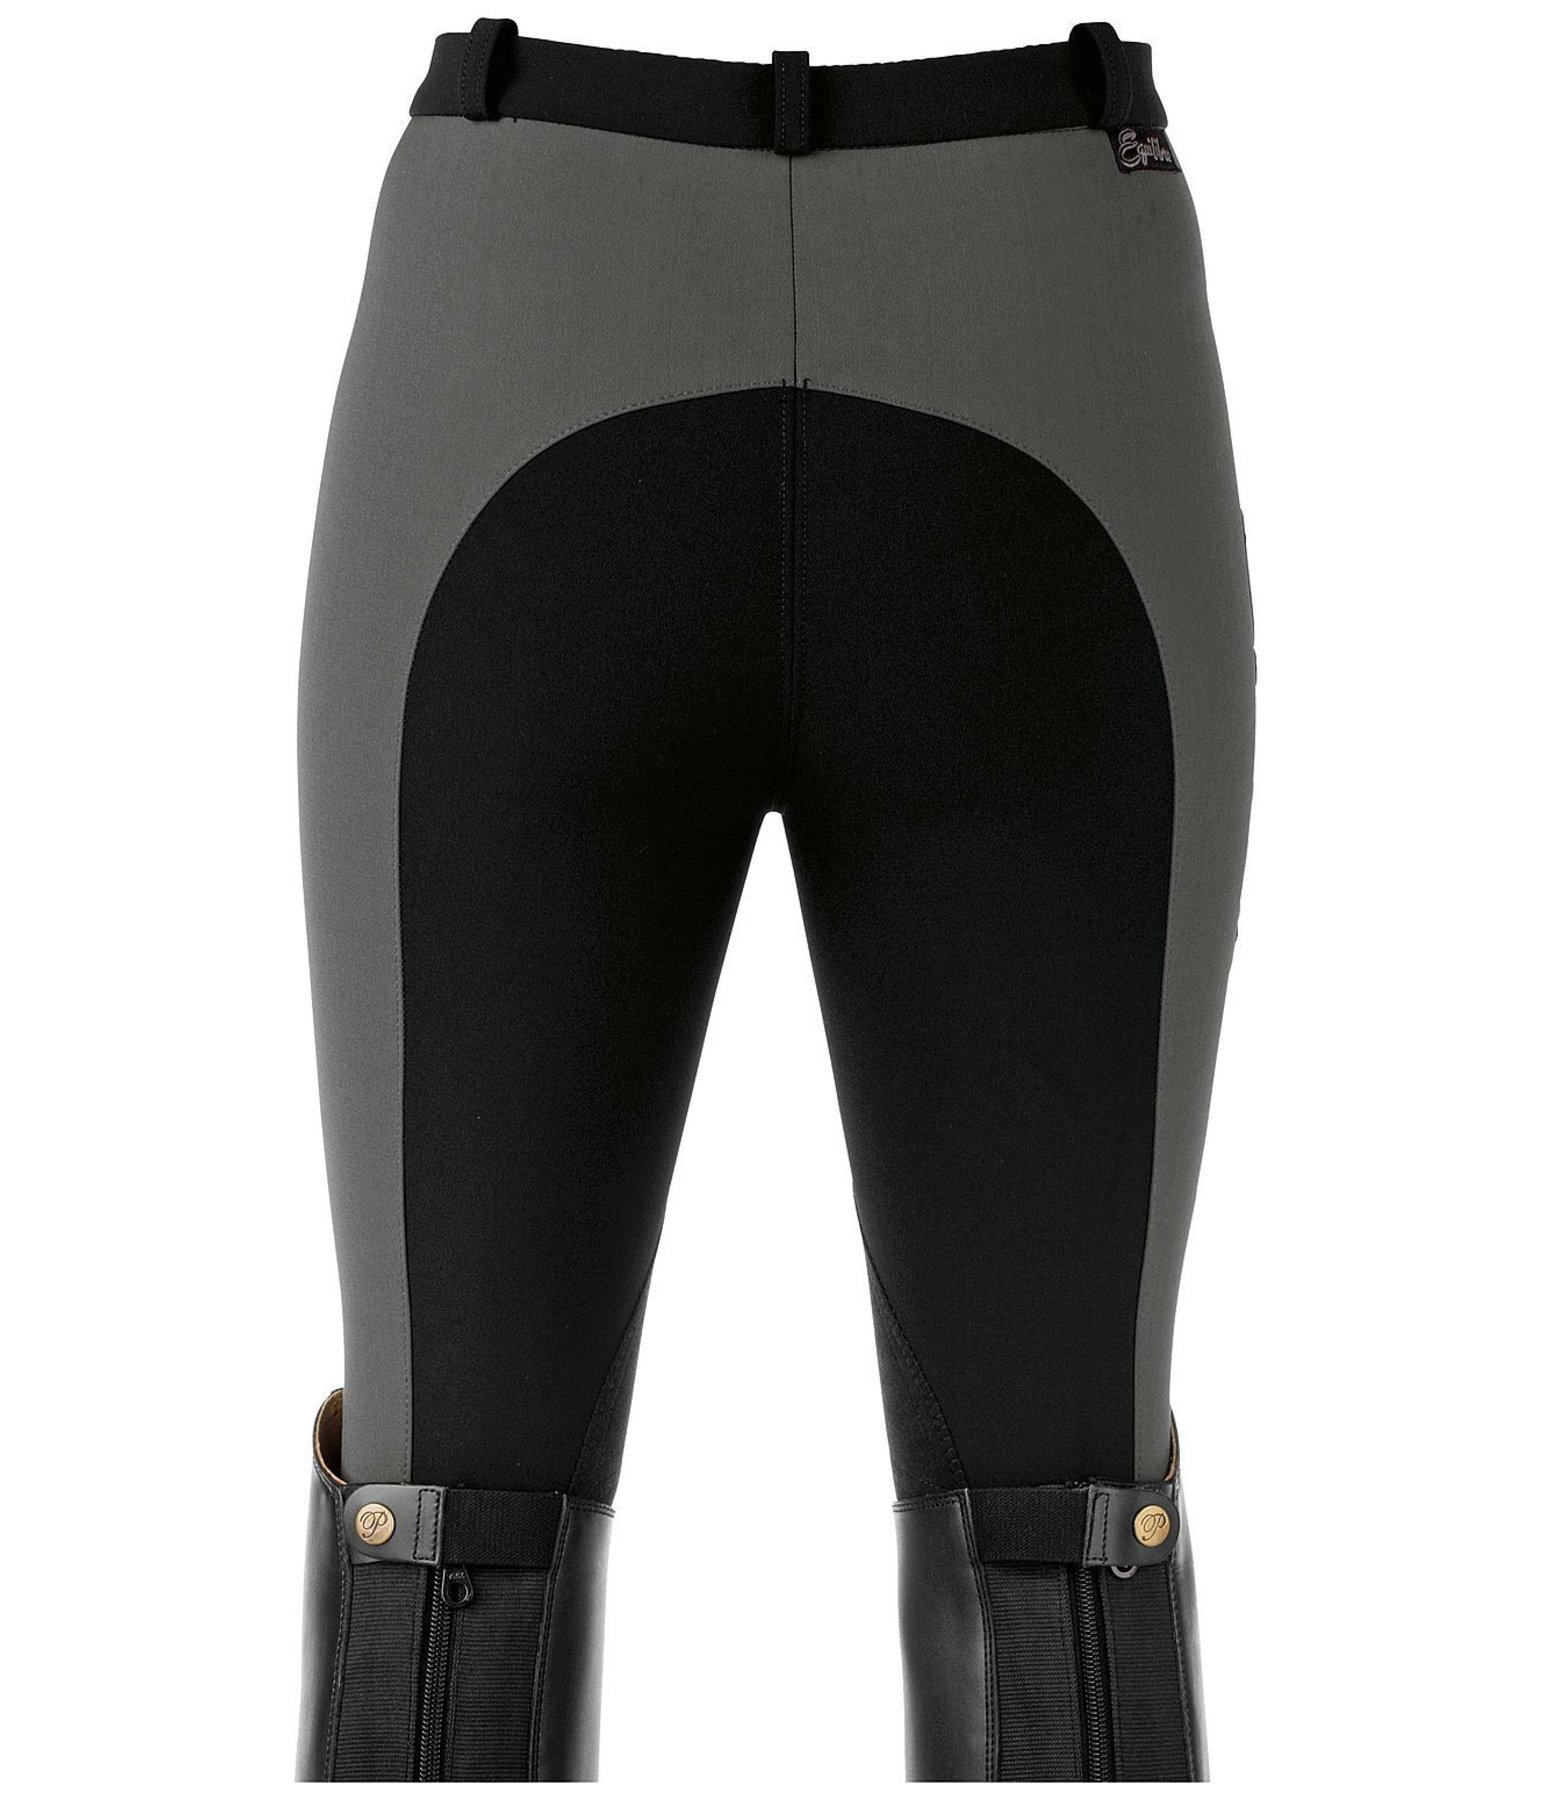 Children's Thermal Knee-Patch Breeches - Soft Touch